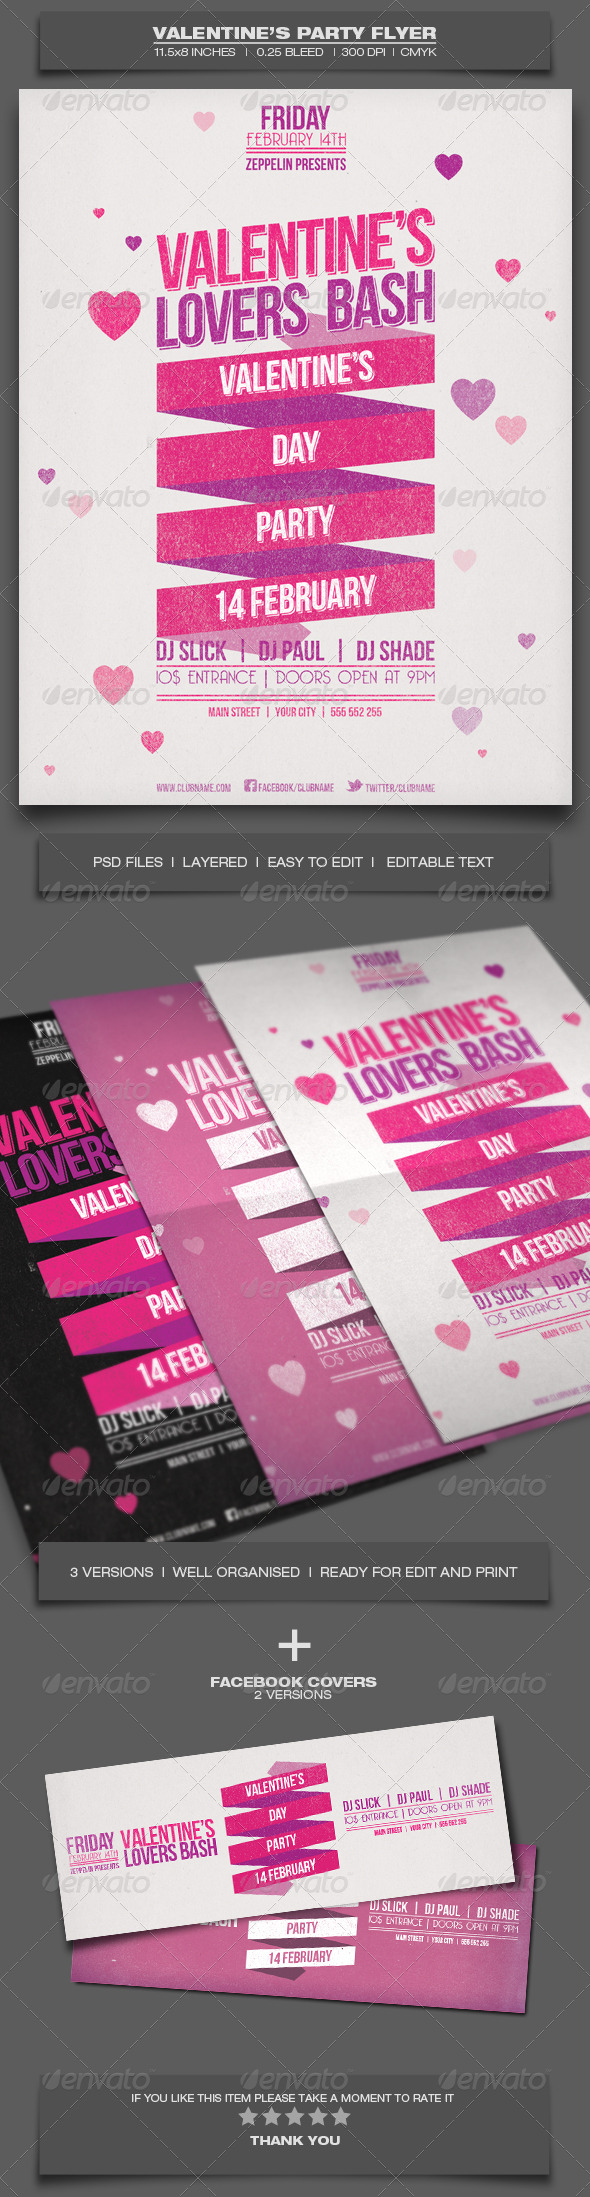 Valentine's Day Party - Event Flyer Template 2 - Holidays Events